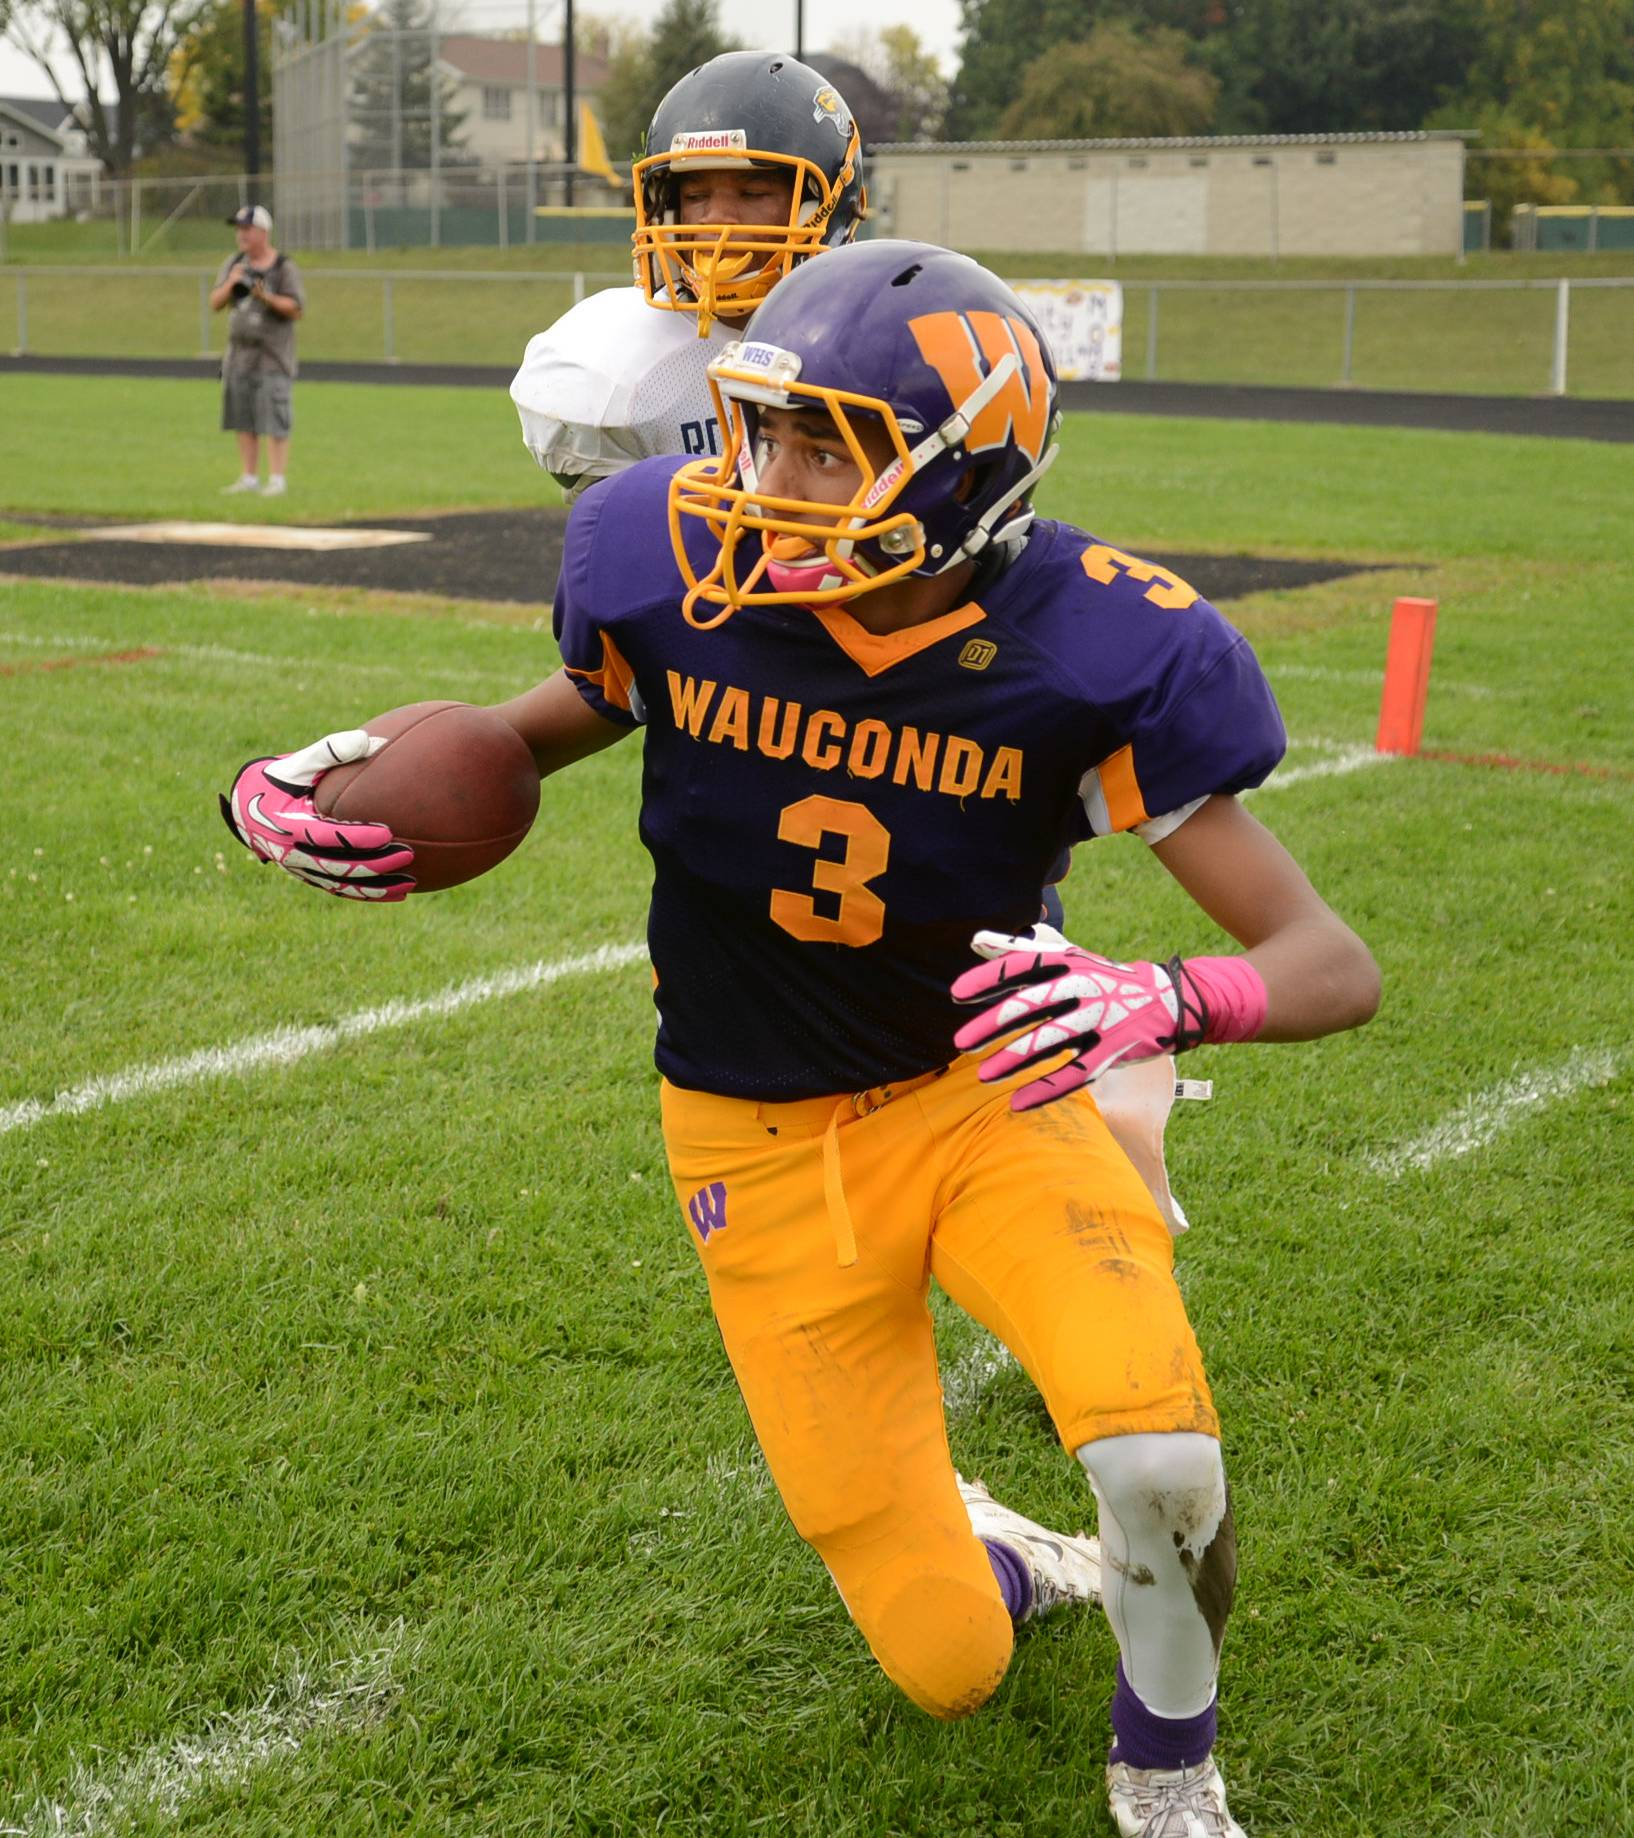 Wauconda High School's football field will be replaced with artificial turf this year.